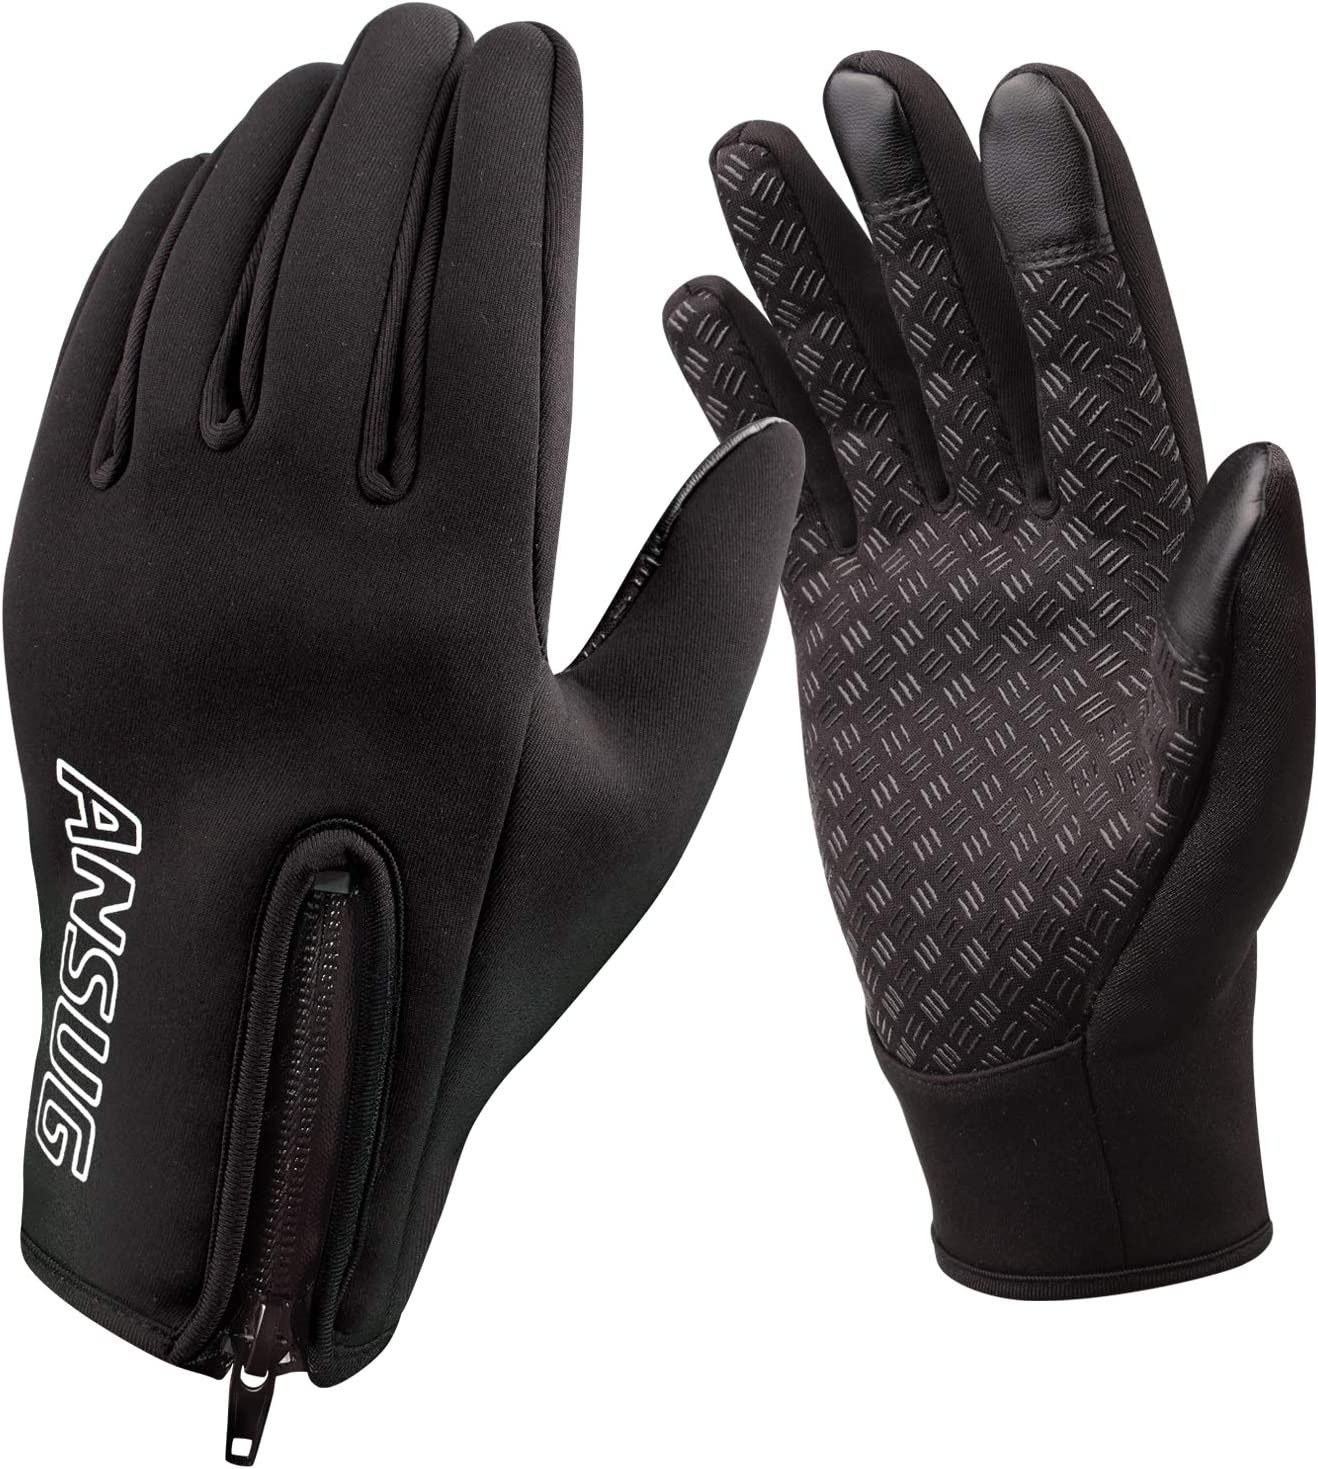 Bicycle gloves Sports Mountain Bike Rock climbing Practical Convenient